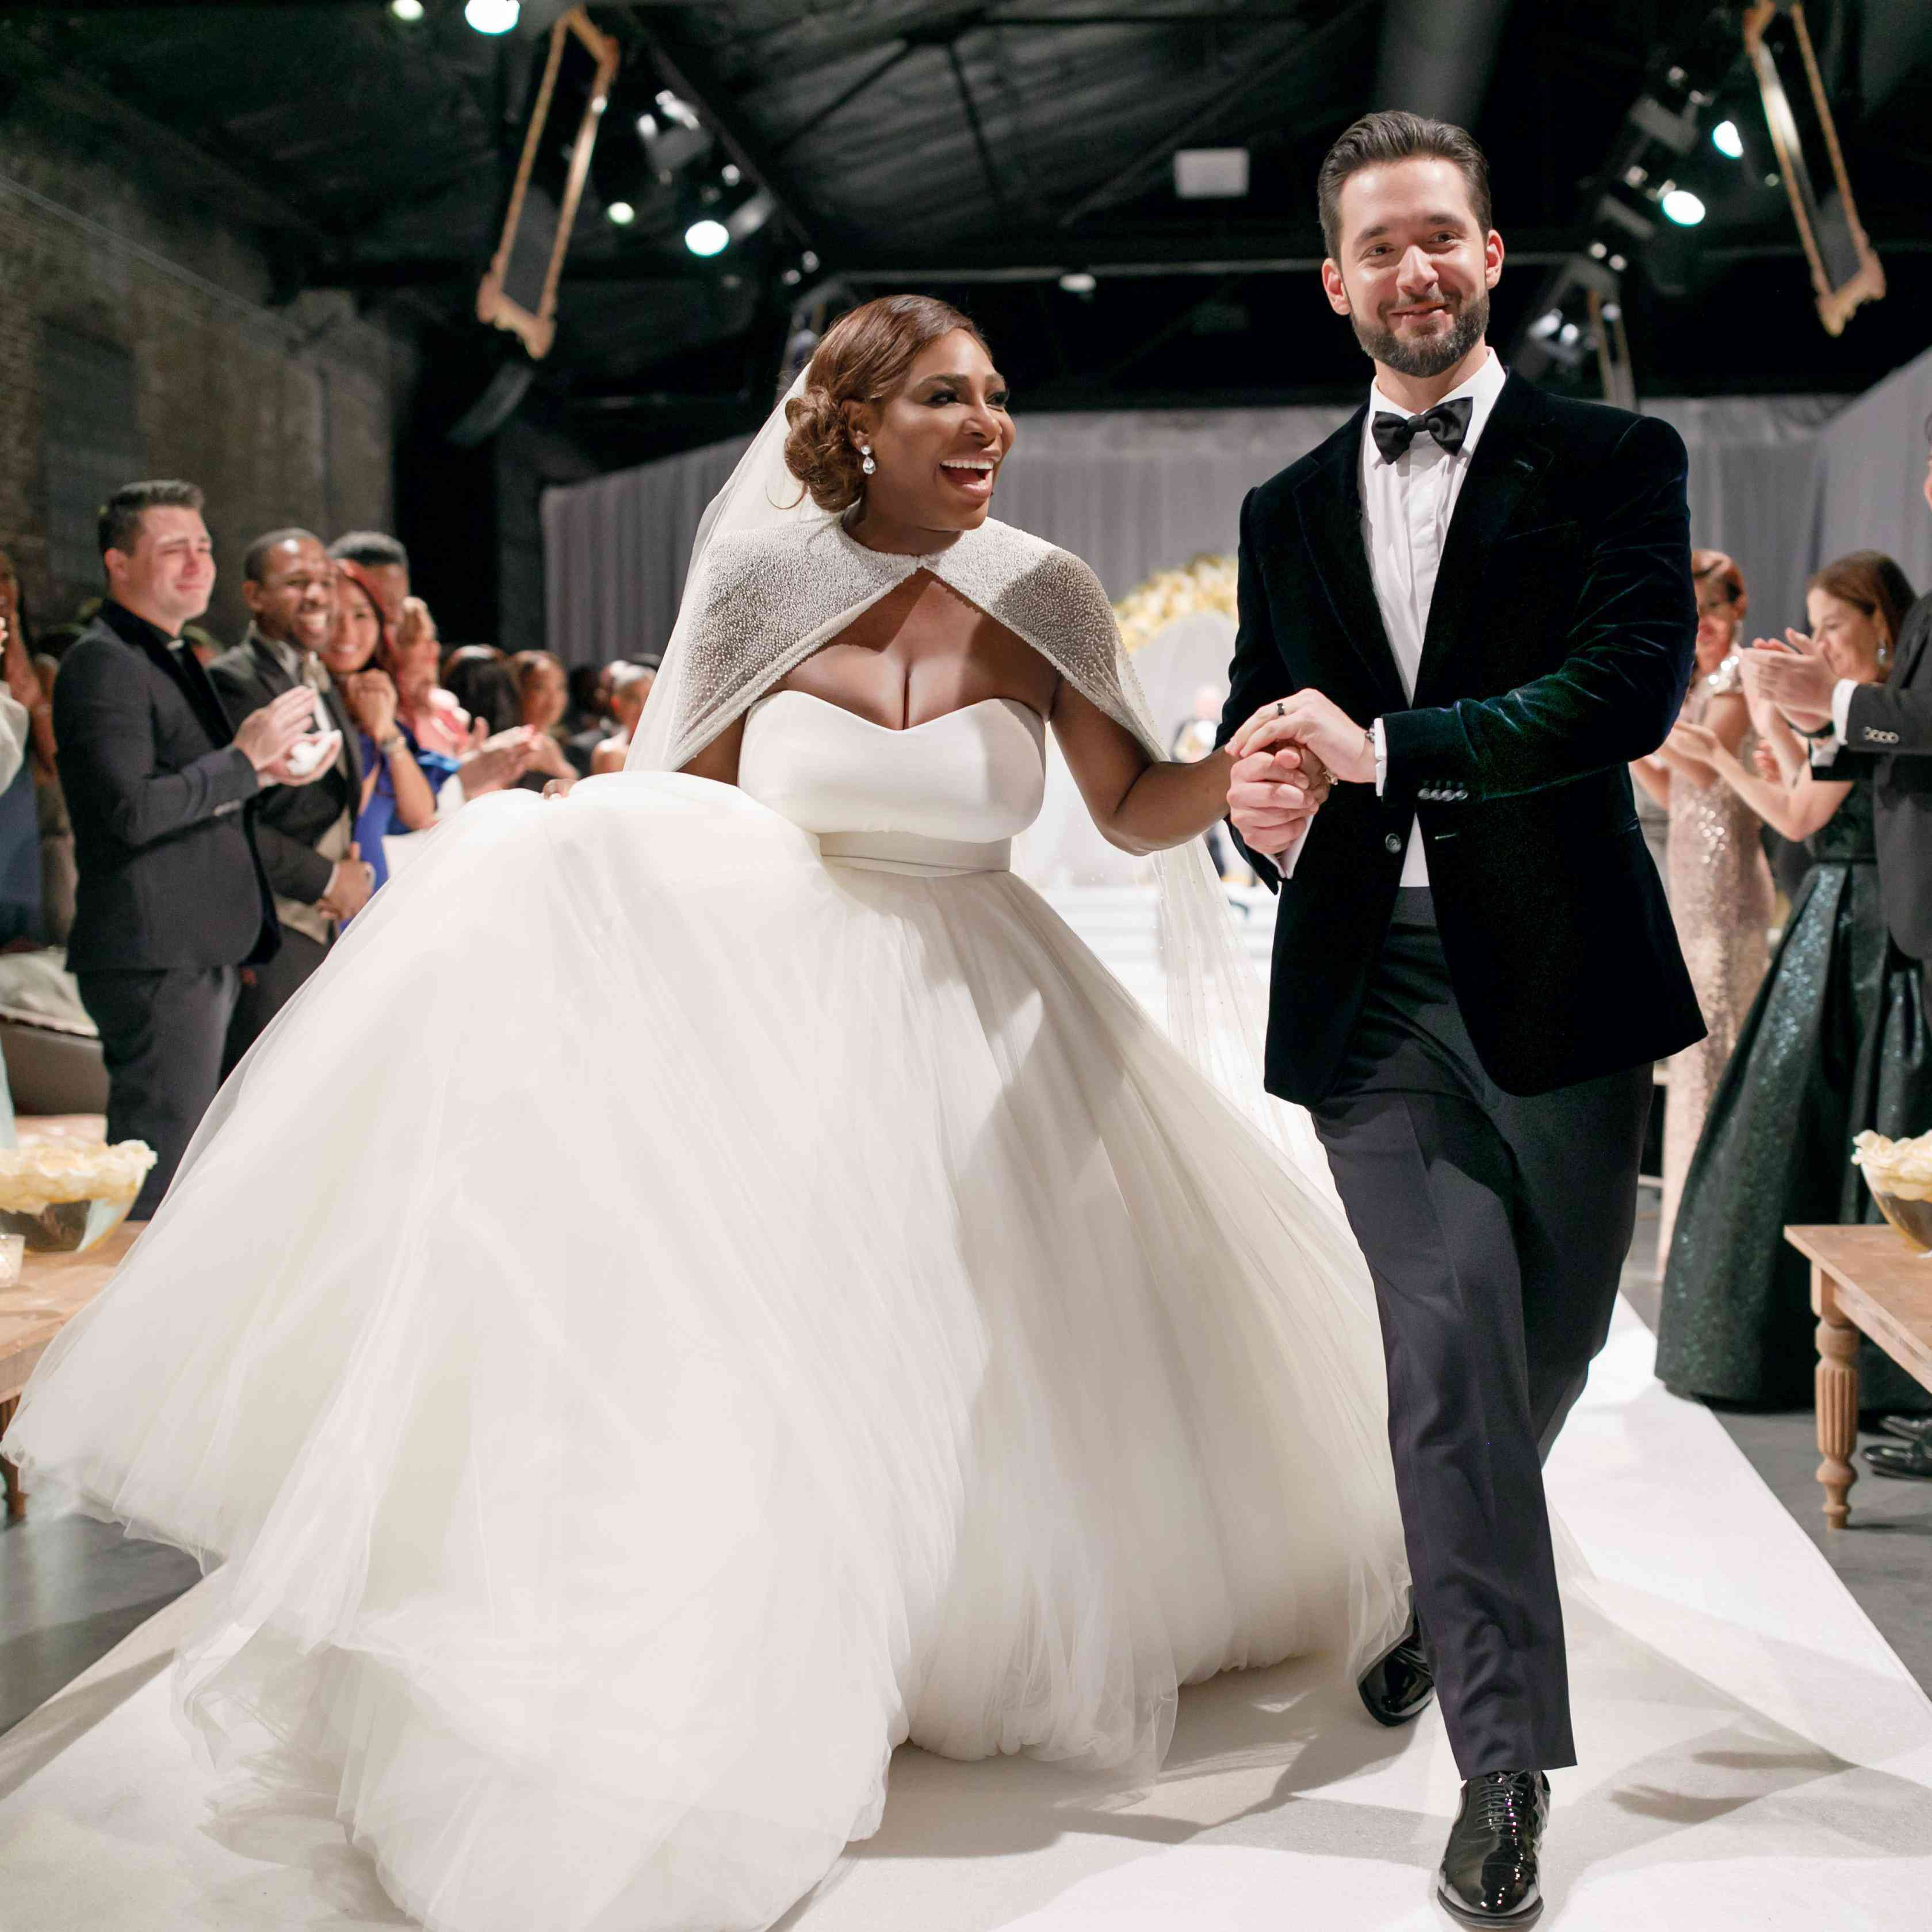 Serena Williams and Alexis Ohanian's Wedding Photo Album Is Here!